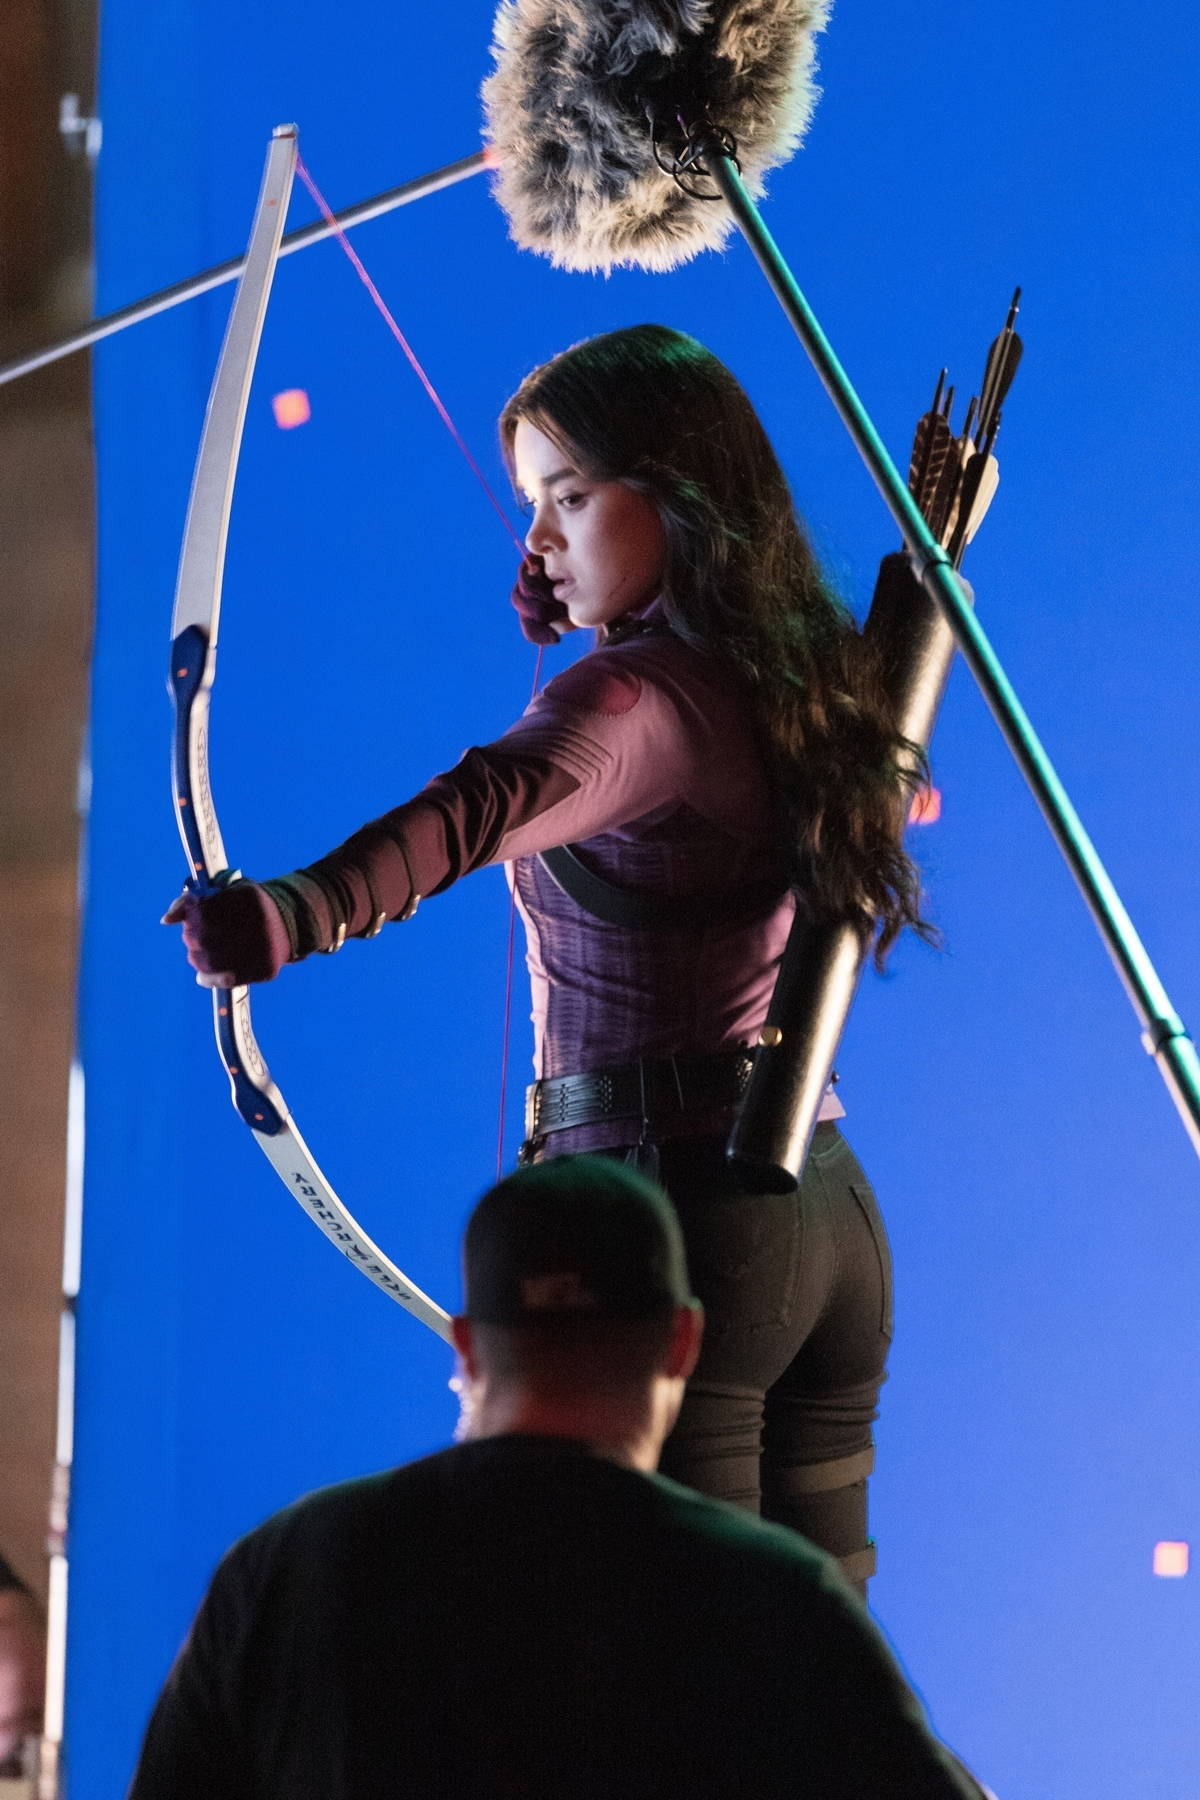 Hailee Steinfeld seen shooting from a rooftop for 'Hawkeye' in Atlanta, Georgia